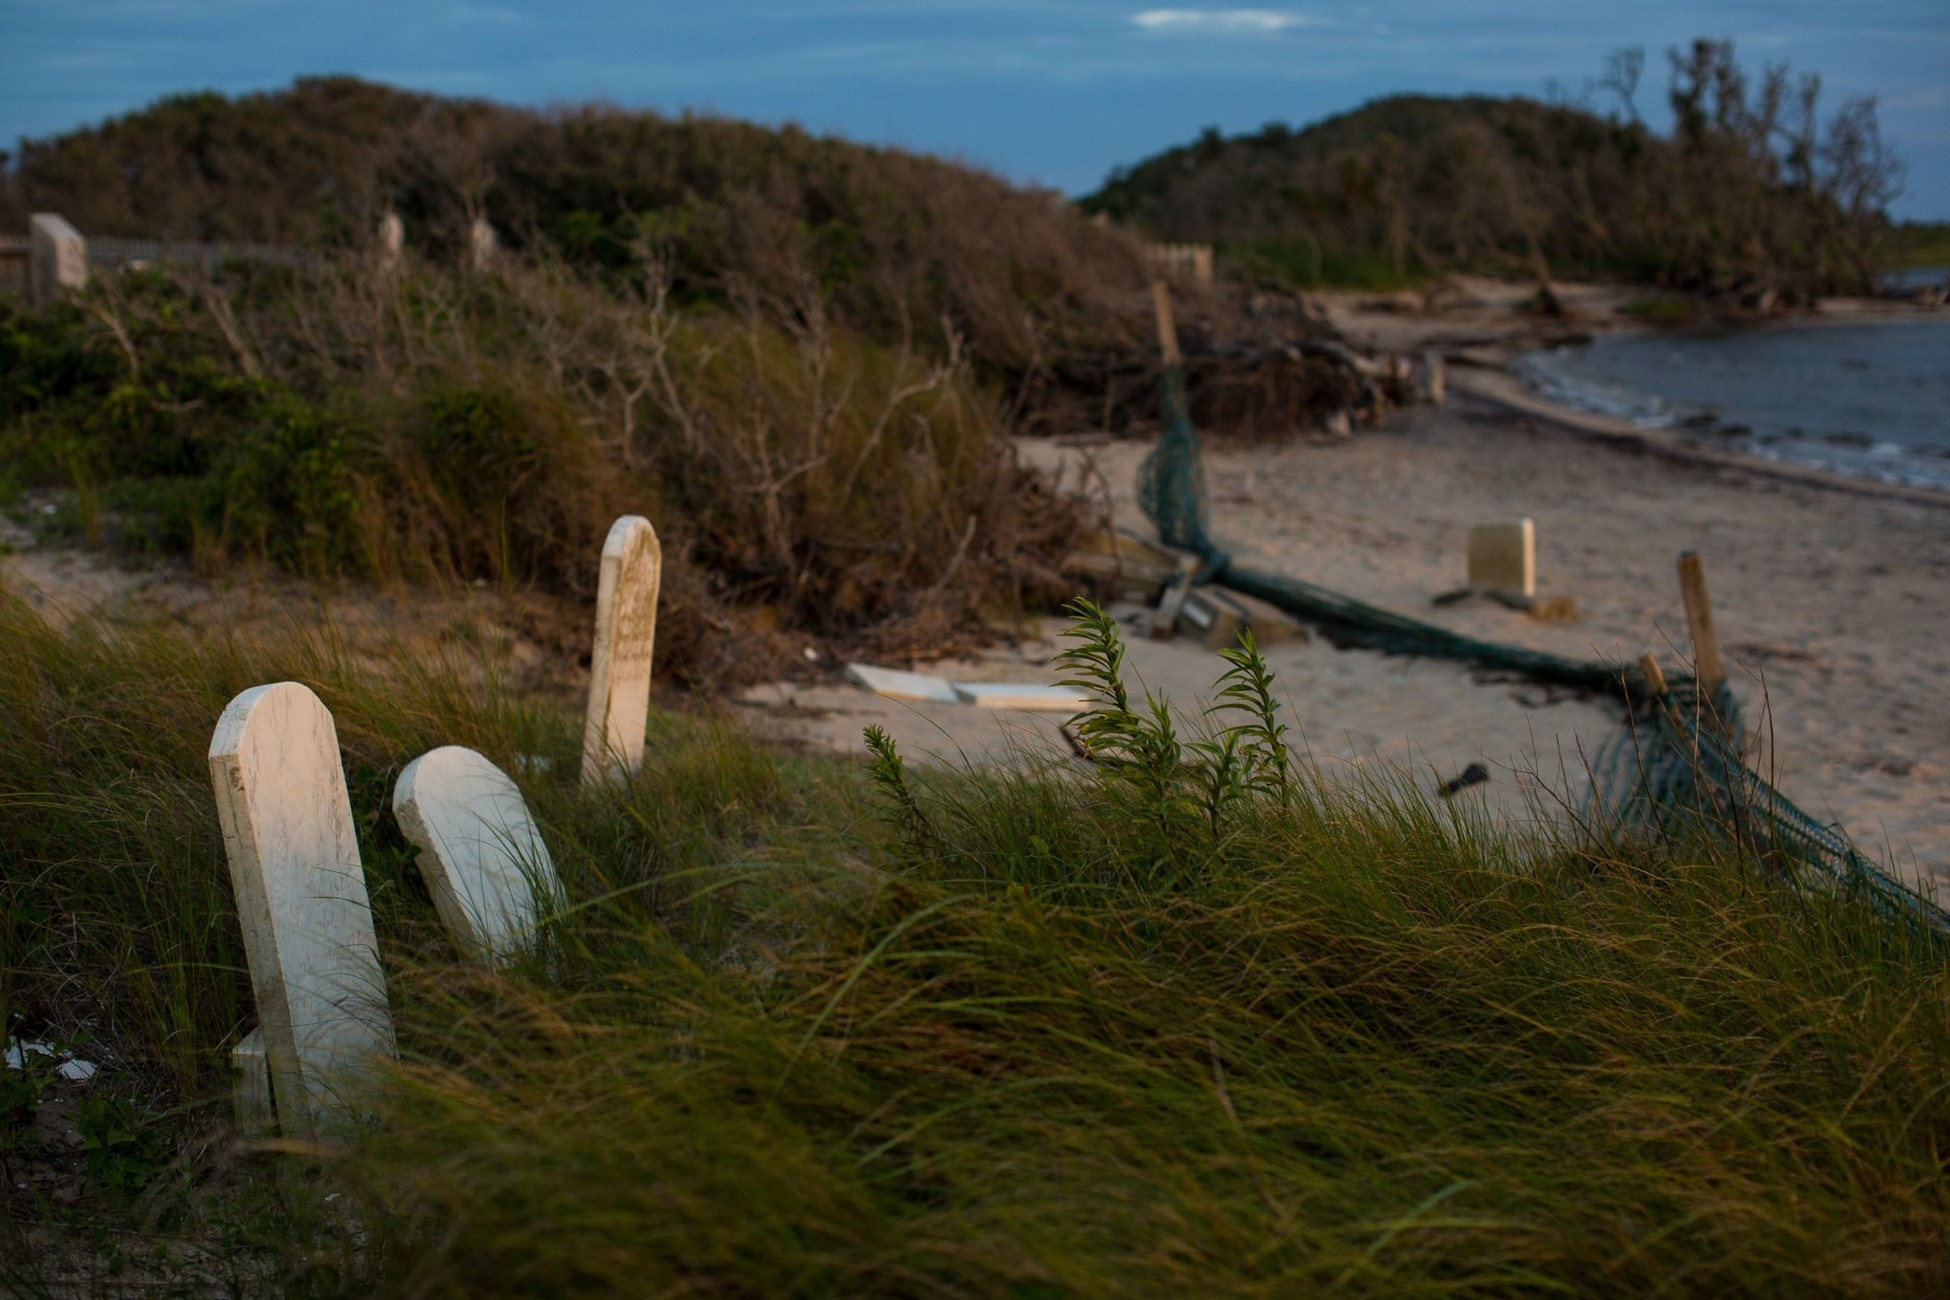 Several old headstones in a community center sit several yards from the shoreline of the Pamlico Sound.